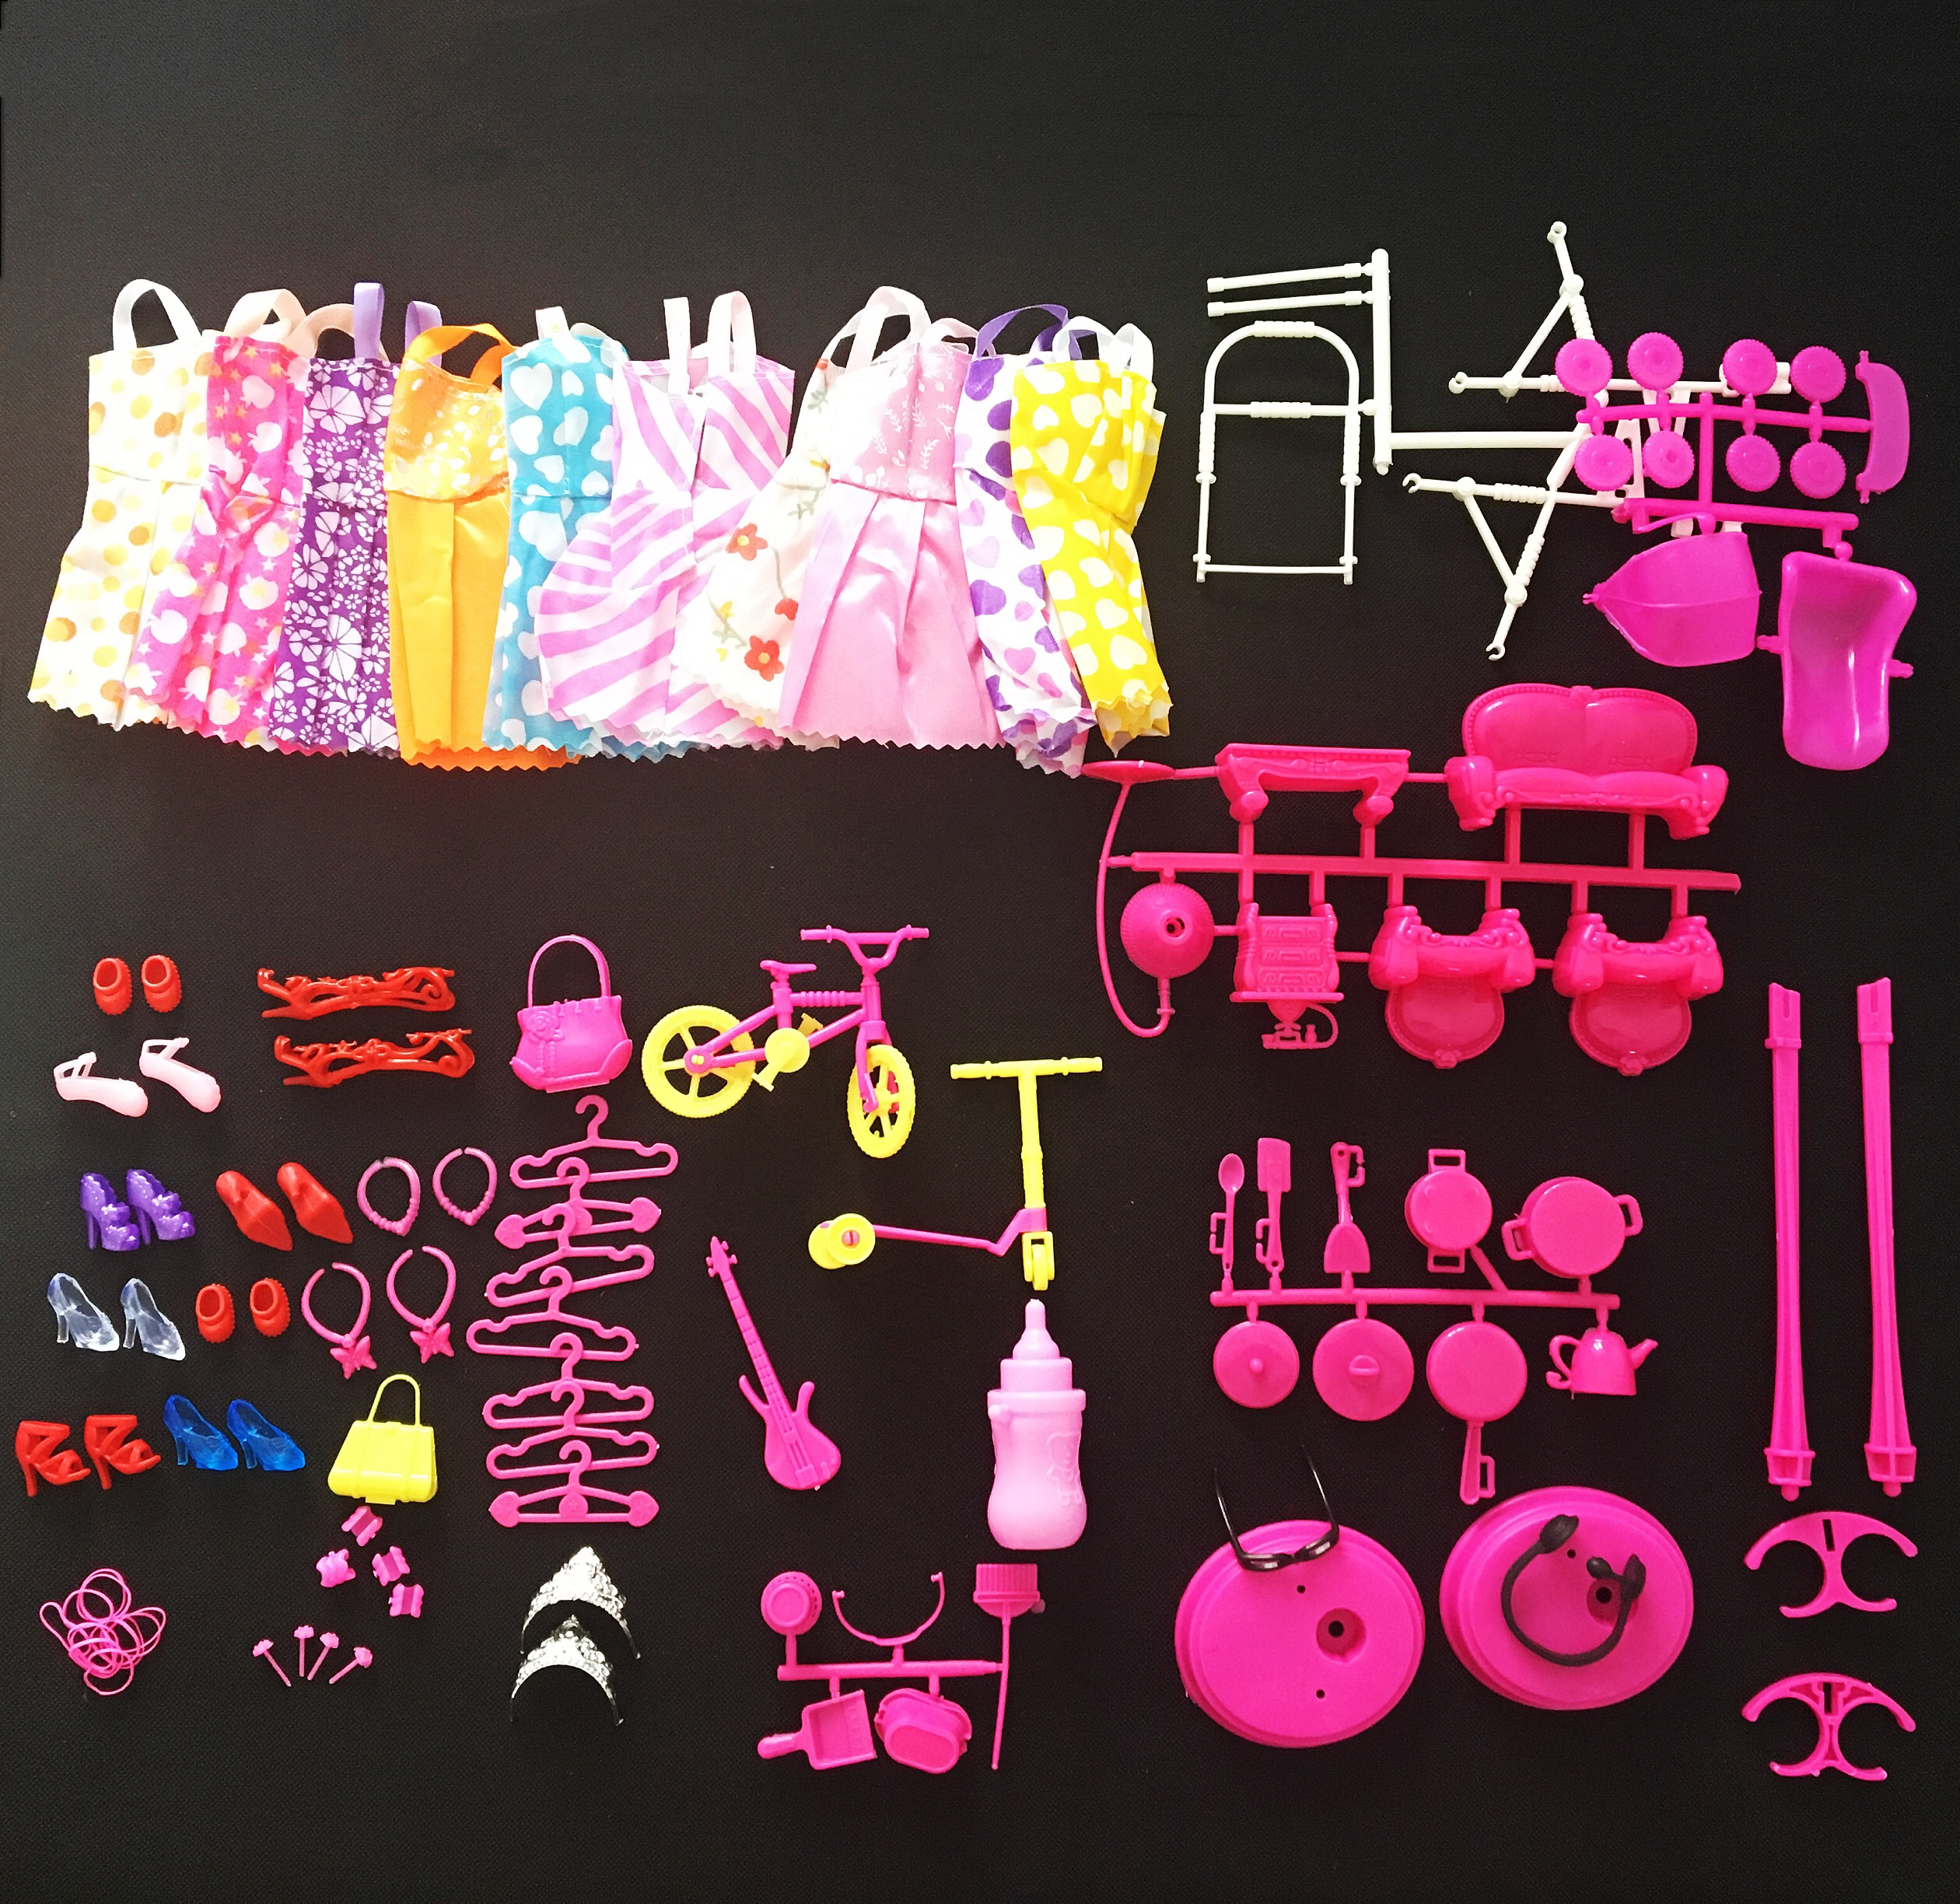 New 30pcs 15Pairs Shoes Boots Decor Barbie Doll Toy Girls Accessories Play House